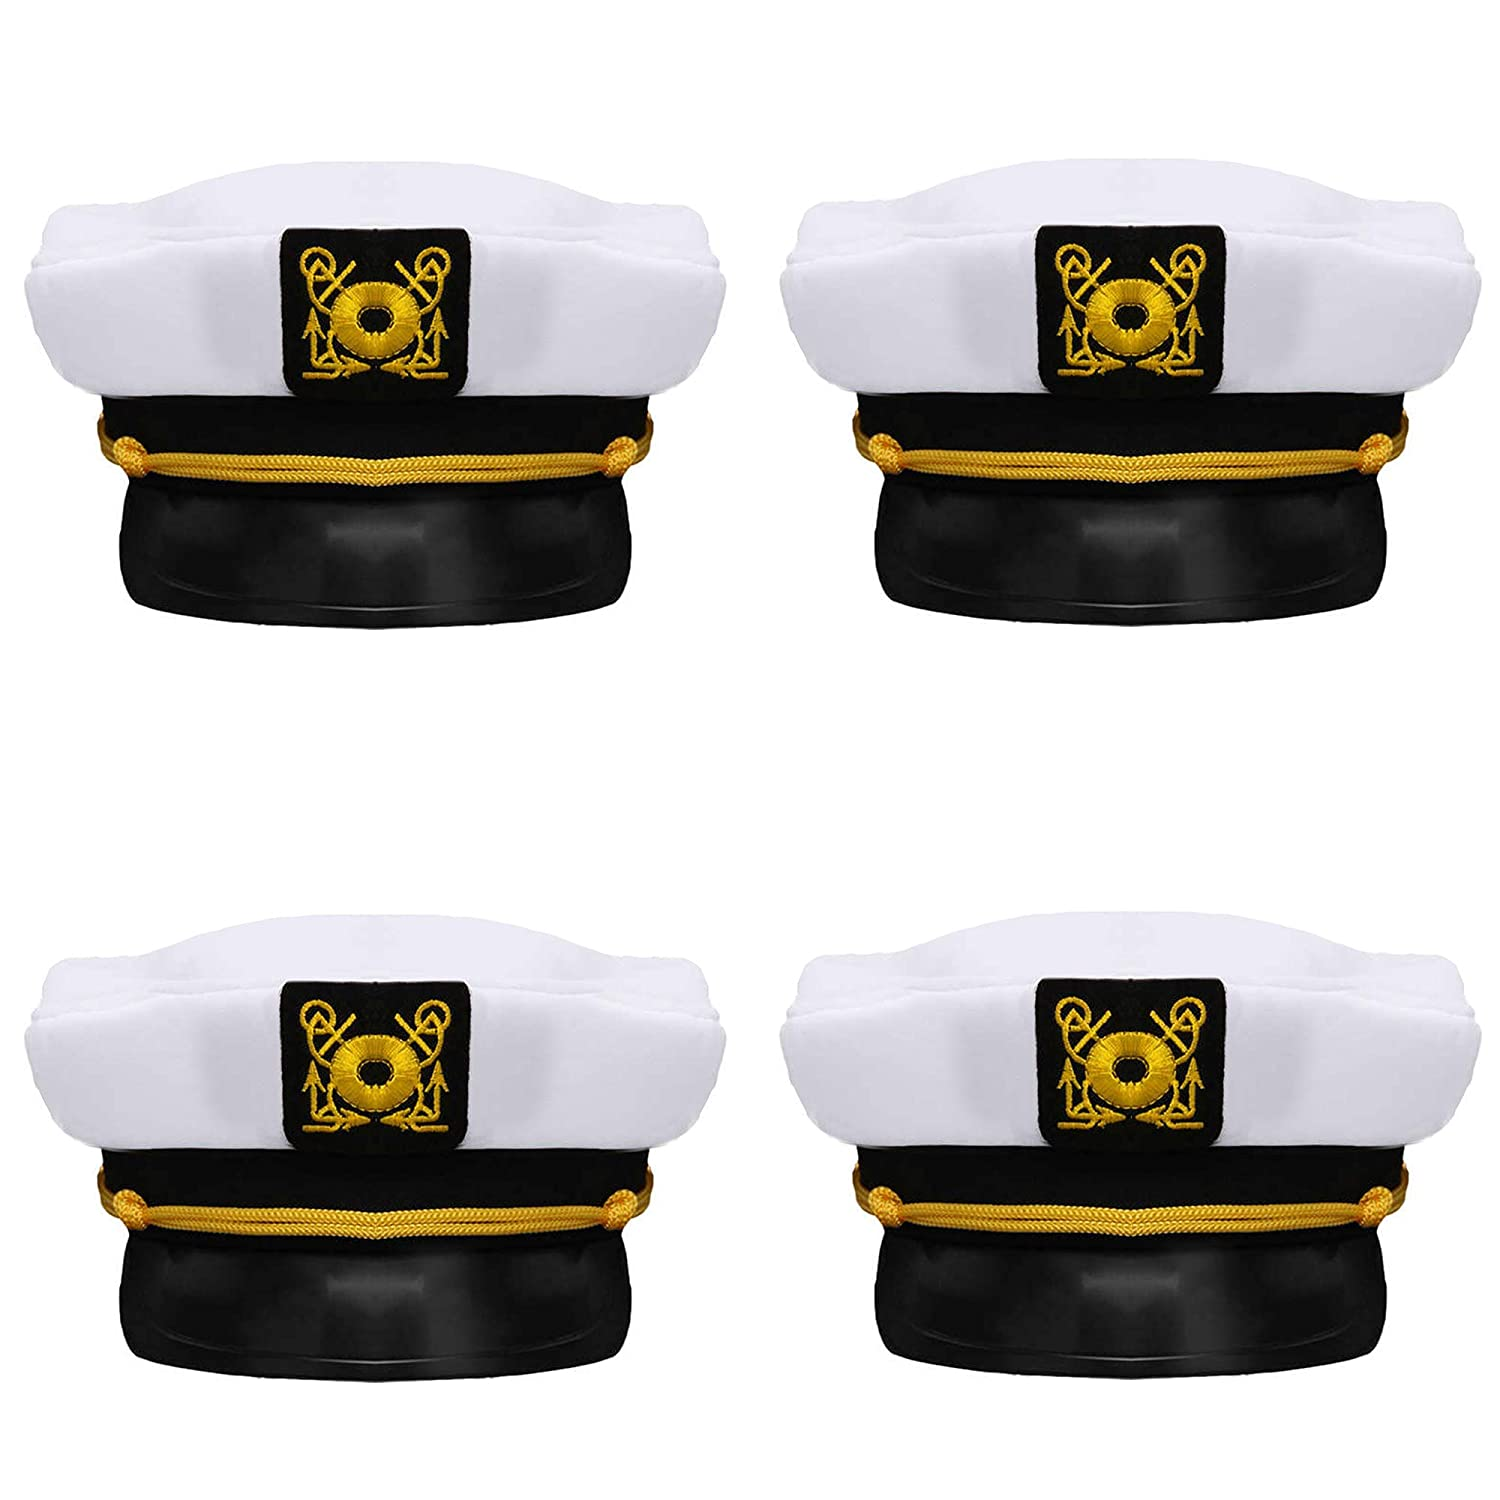 57591f5f94a78 Bottles N Bags Nautical Captain White Sailor Hat (4 Pack) Captain s Hats  are A Great Family Cruise Accessory for Men